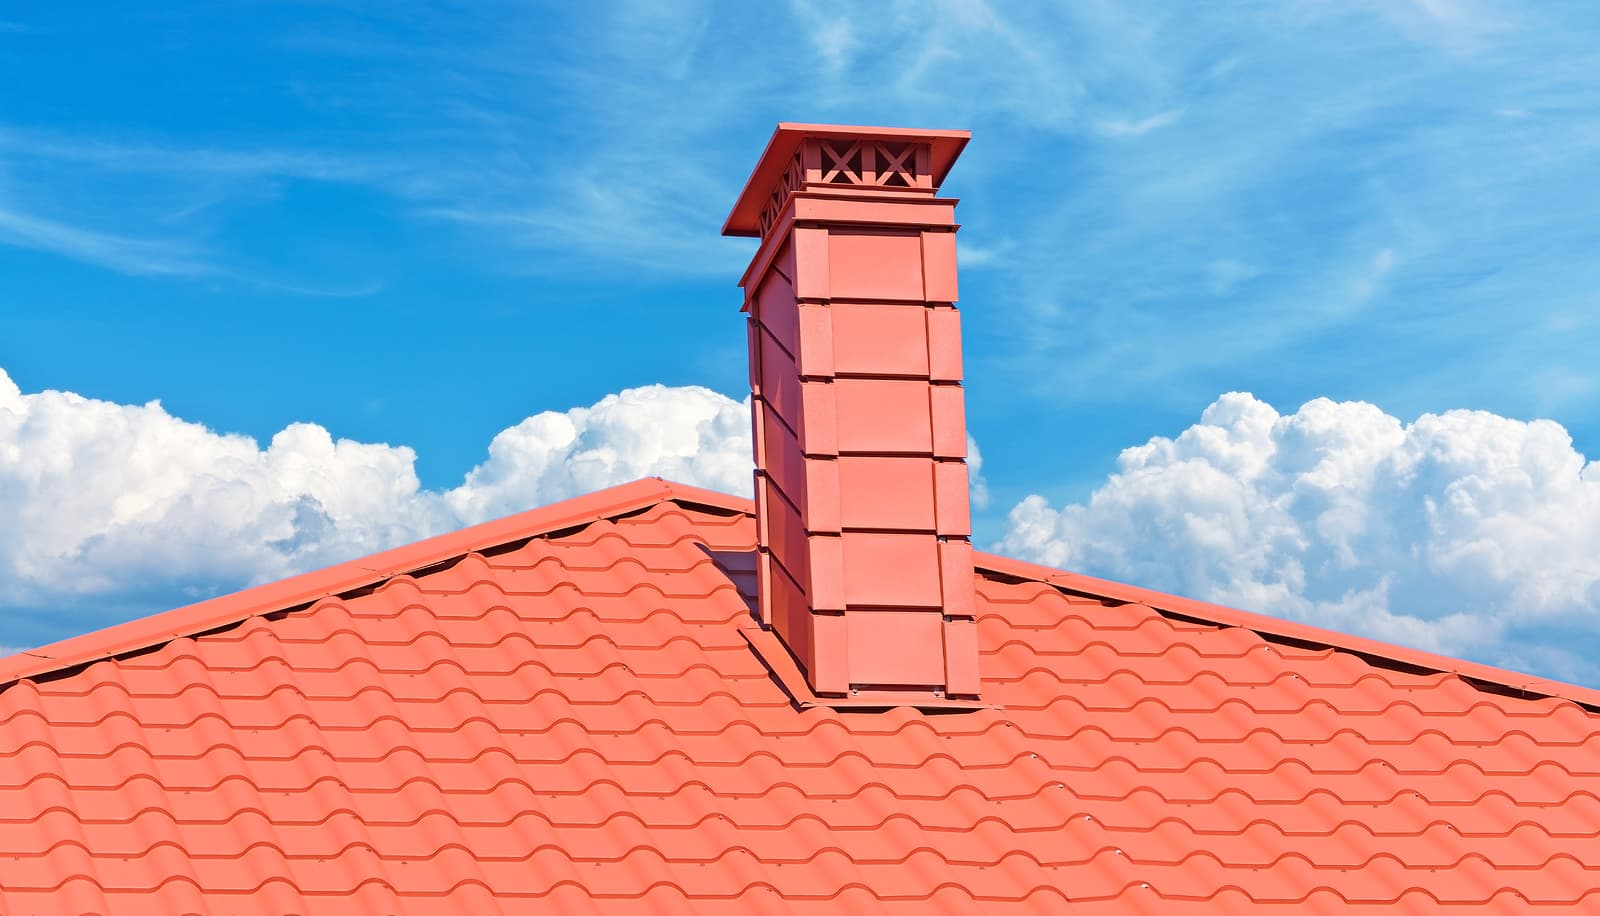 Roof Repair - The Importance of Maintaining Roof Flashing